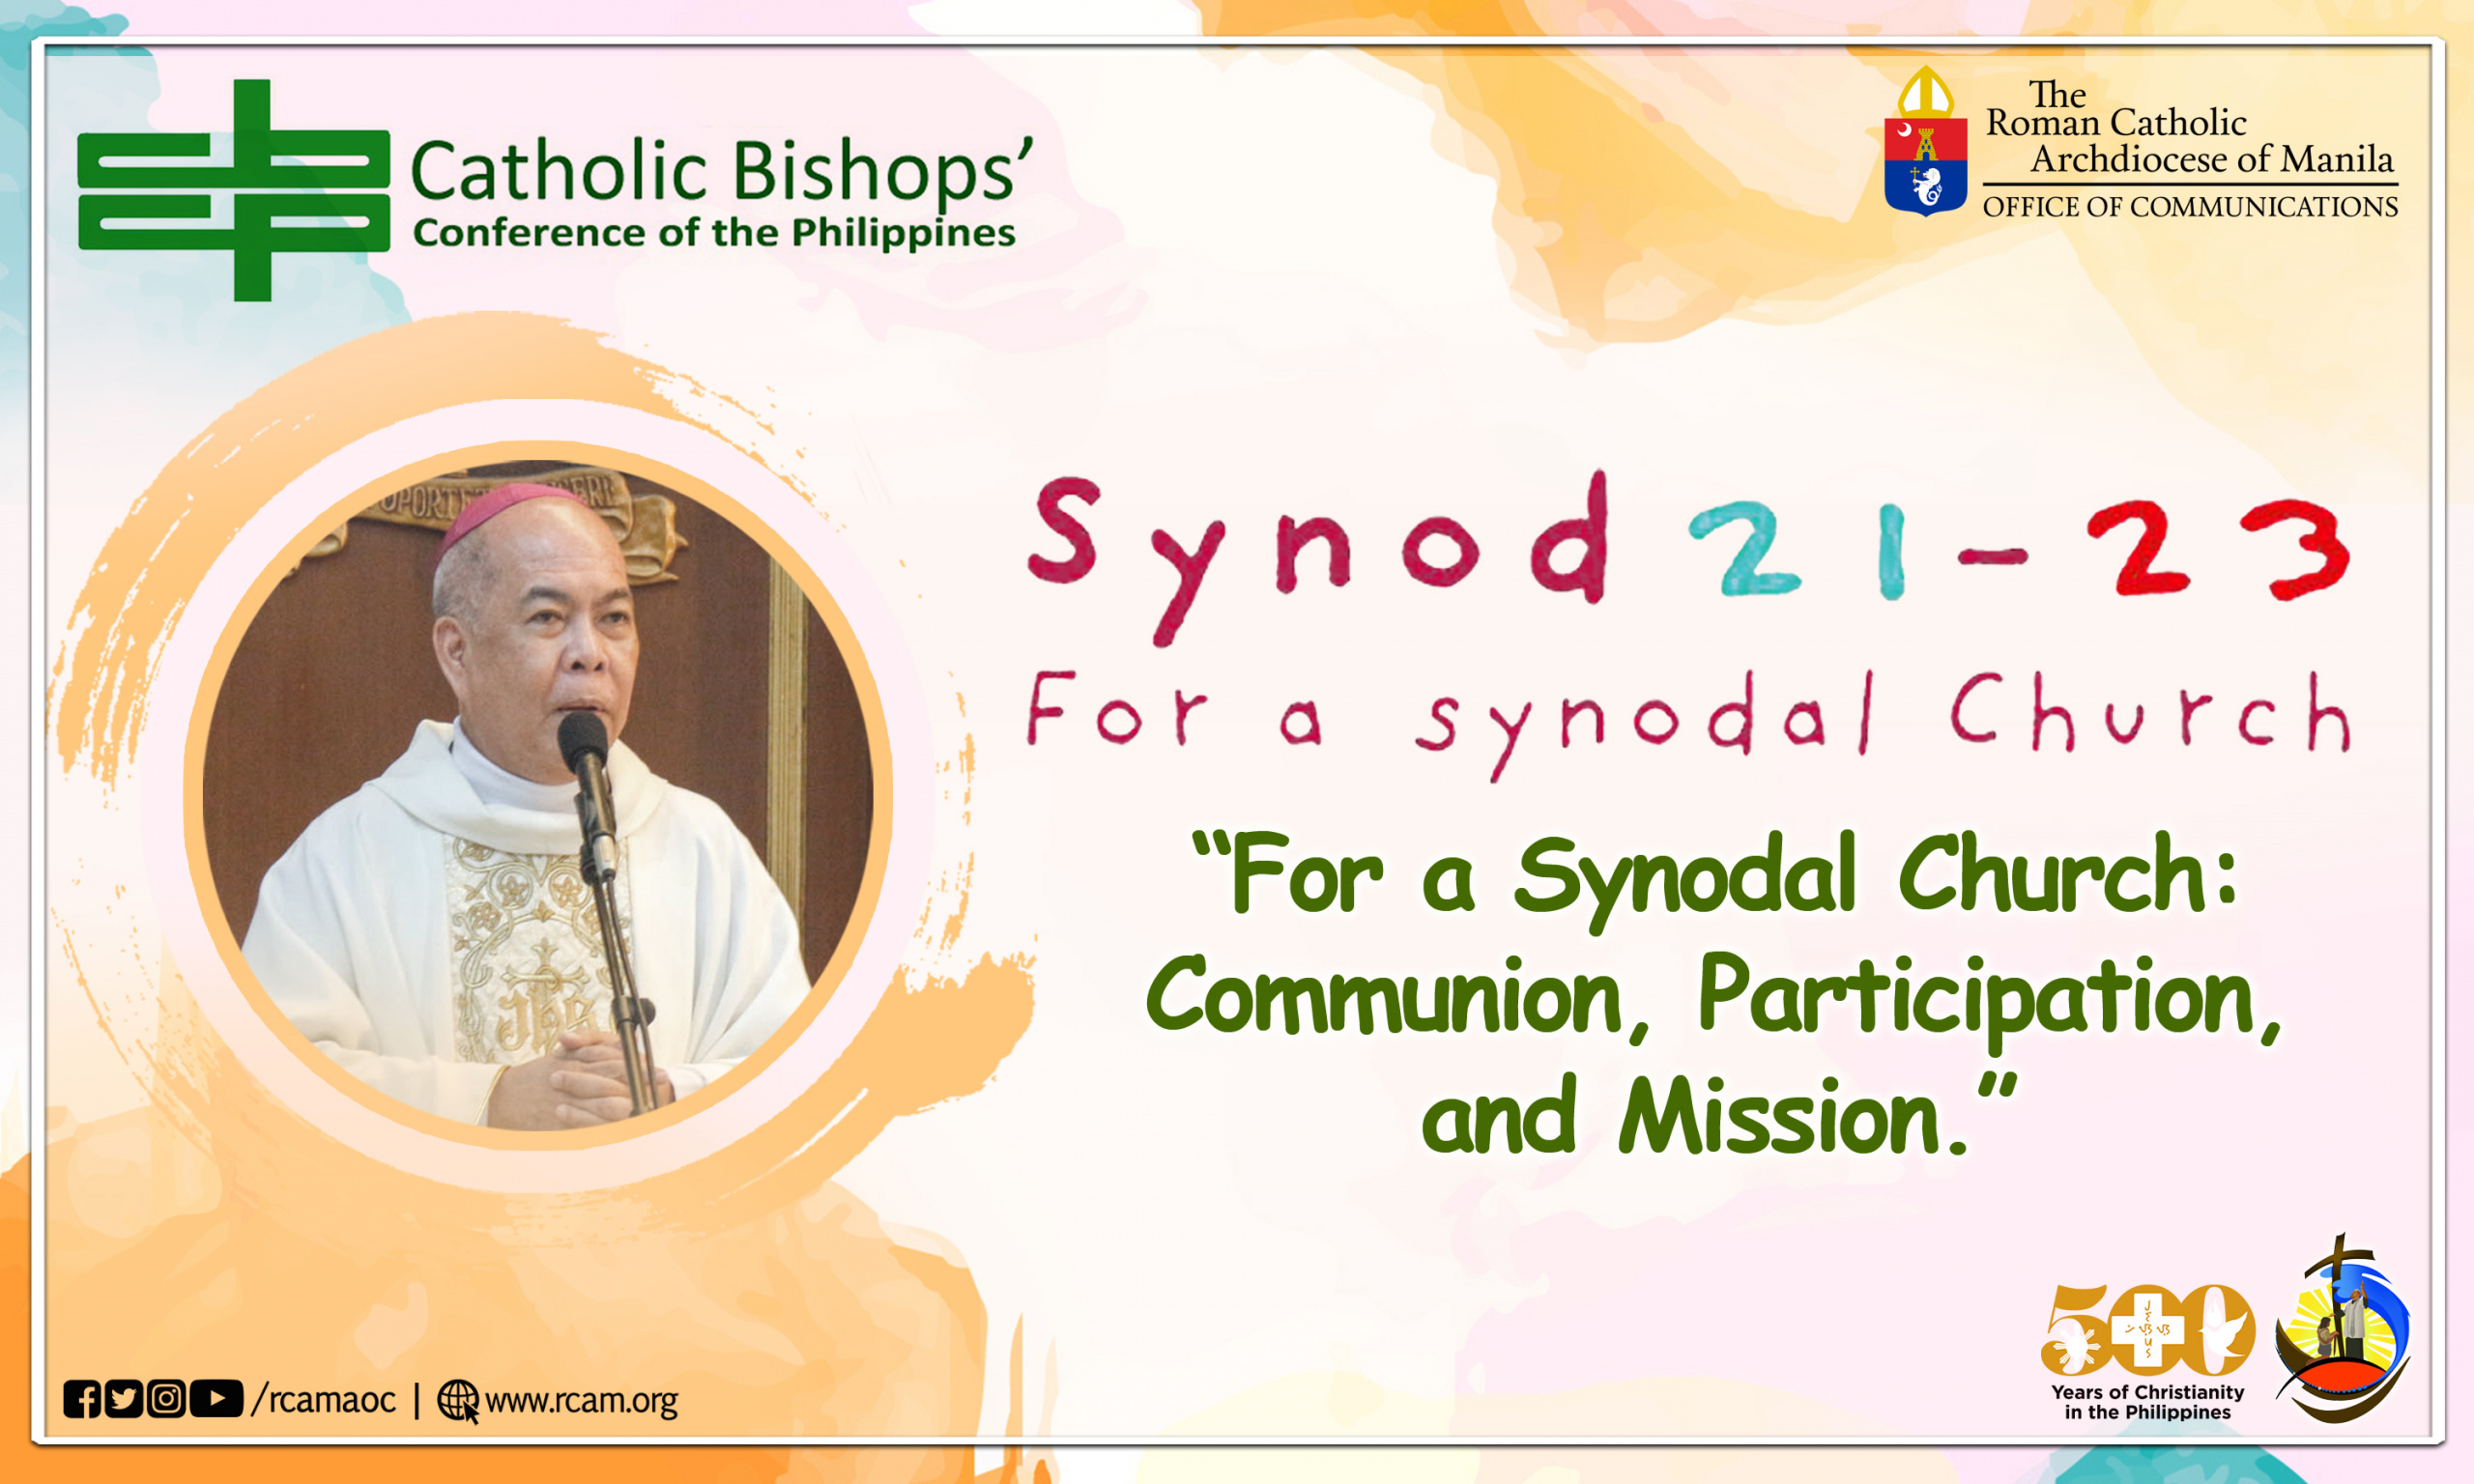 Philippine Dioceses launch consultations for 2023 Synod on Synodality